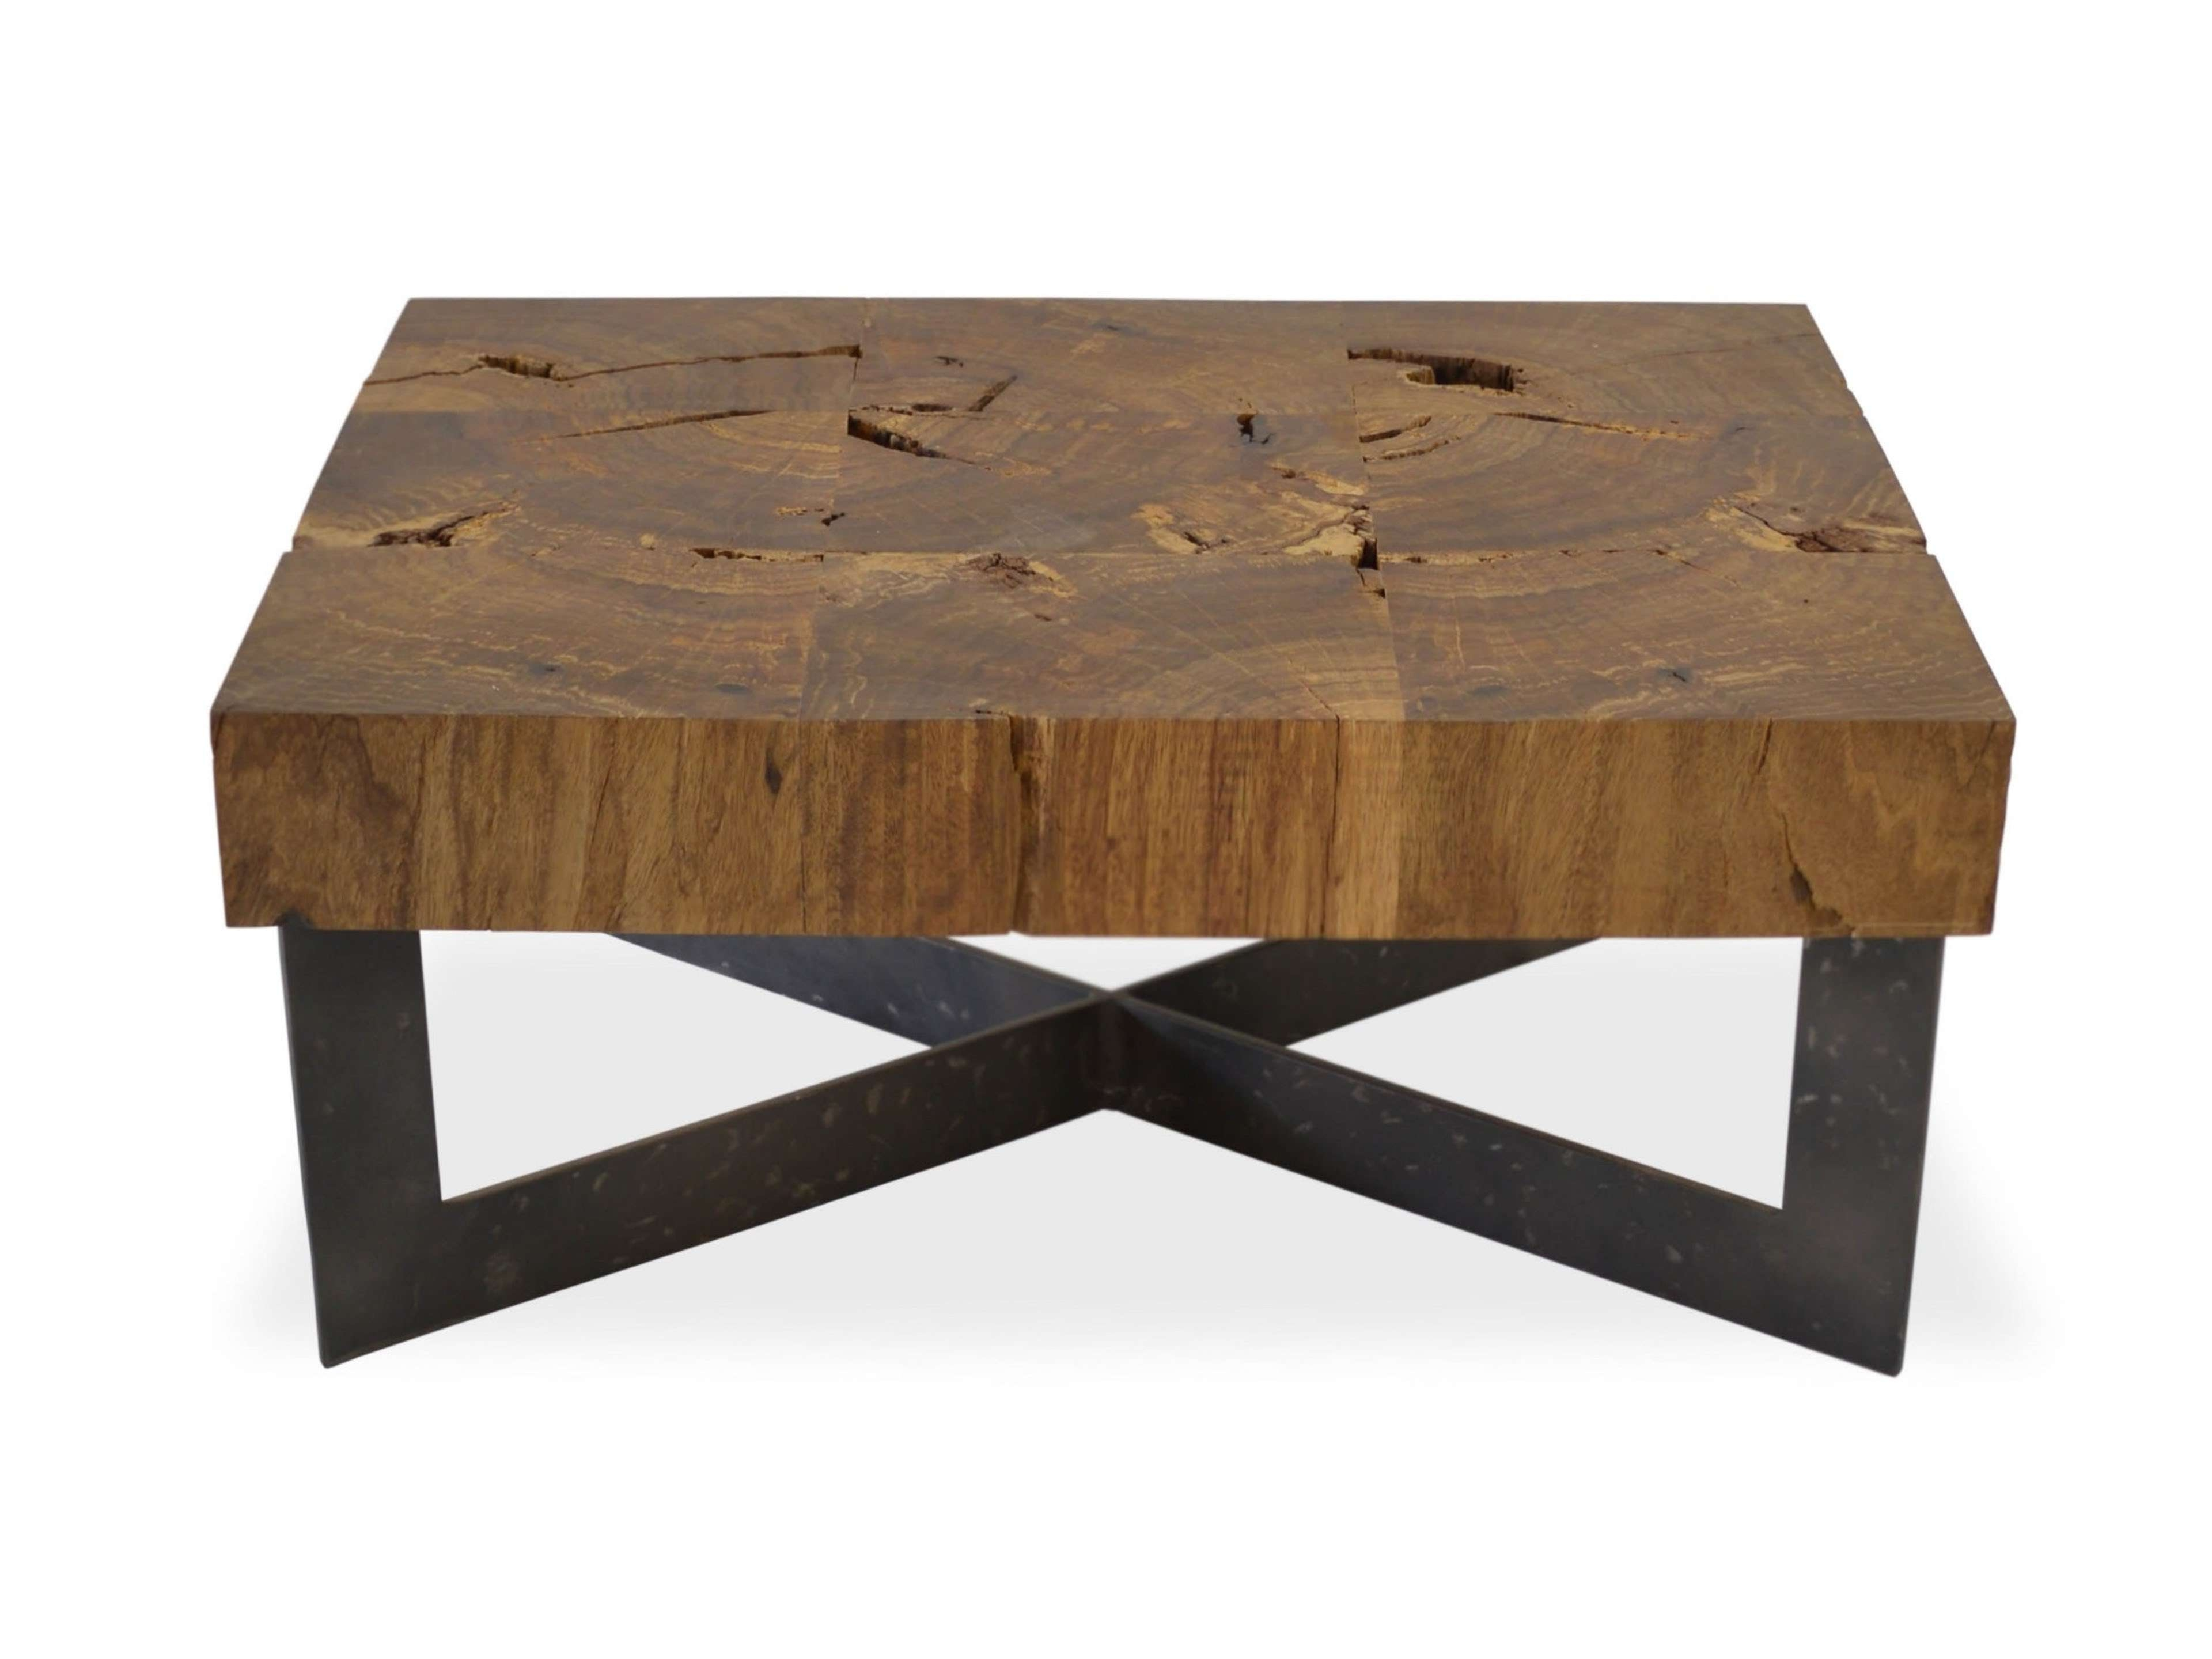 Preferred Steel And Wood Coffee Tables Pertaining To Wood And Steel Coffee Table – Writehookstudio (View 18 of 20)